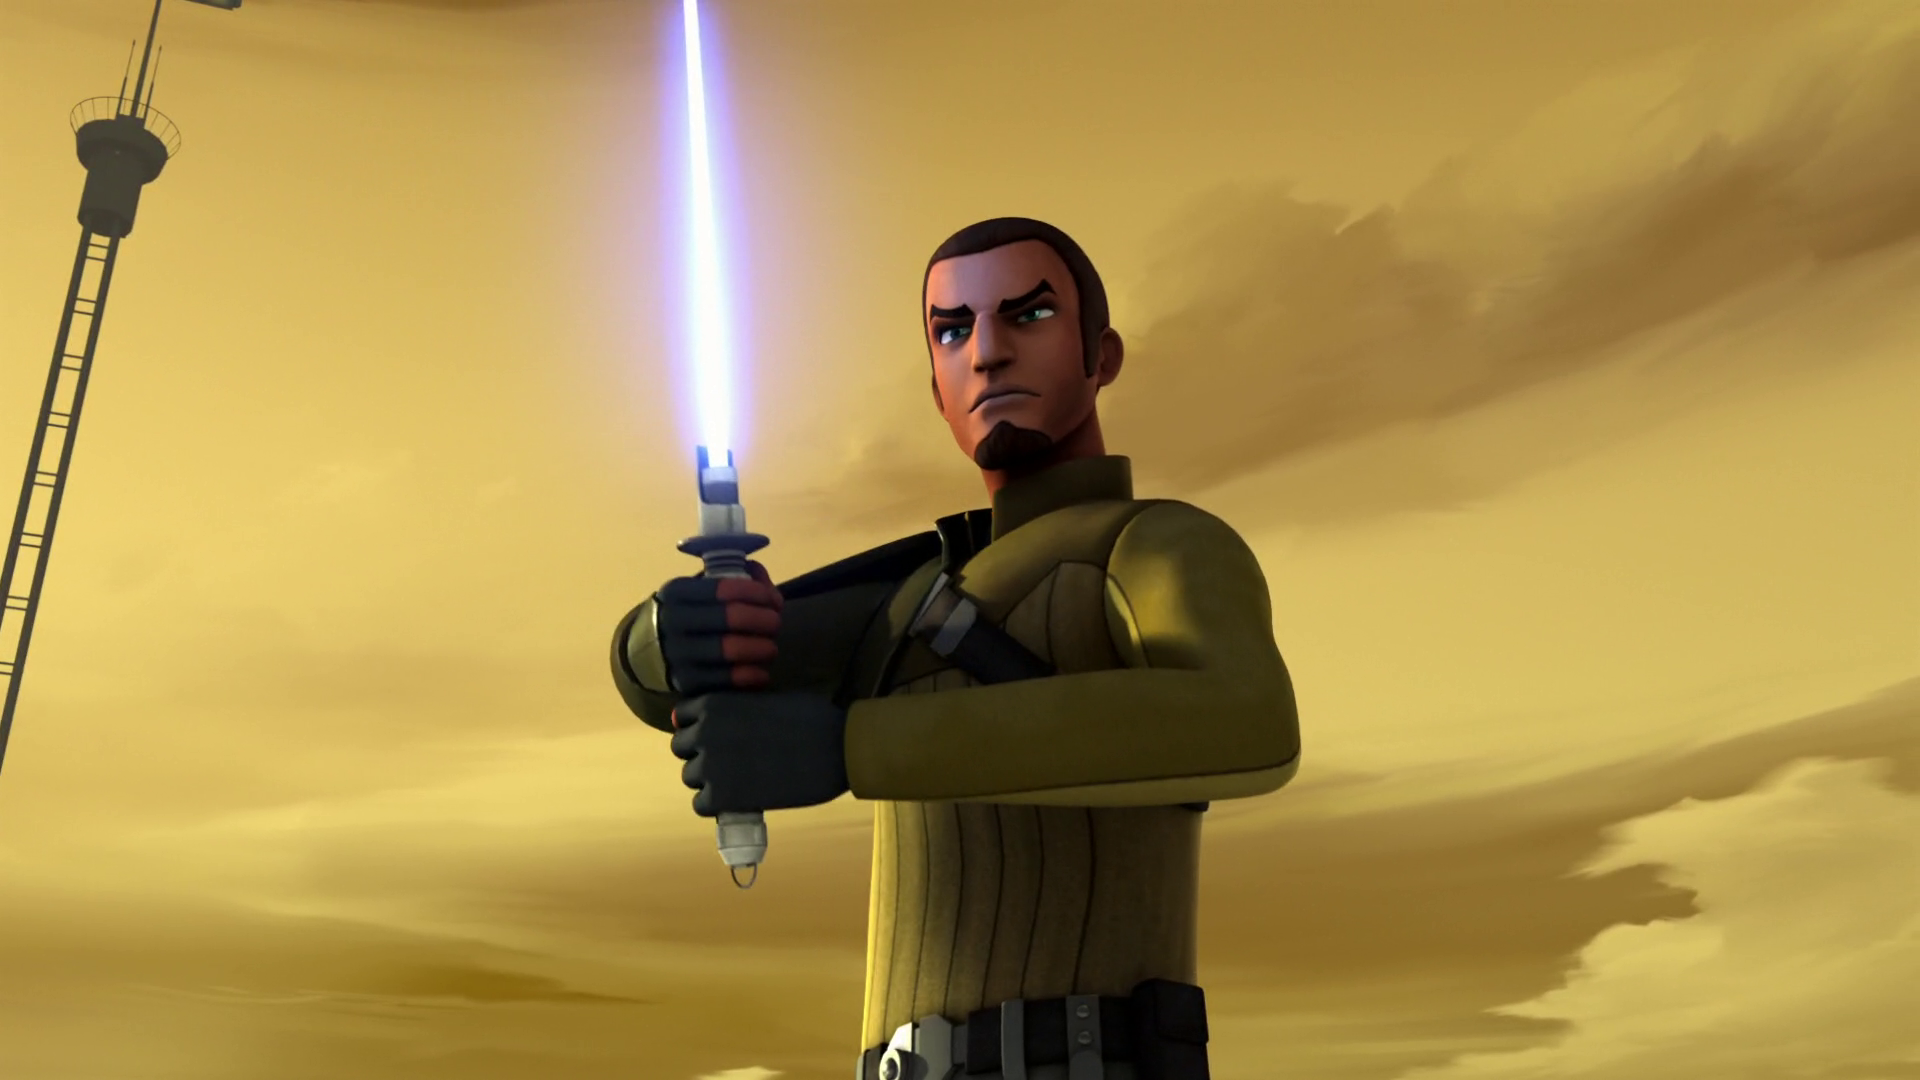 star wars rebels s01e07